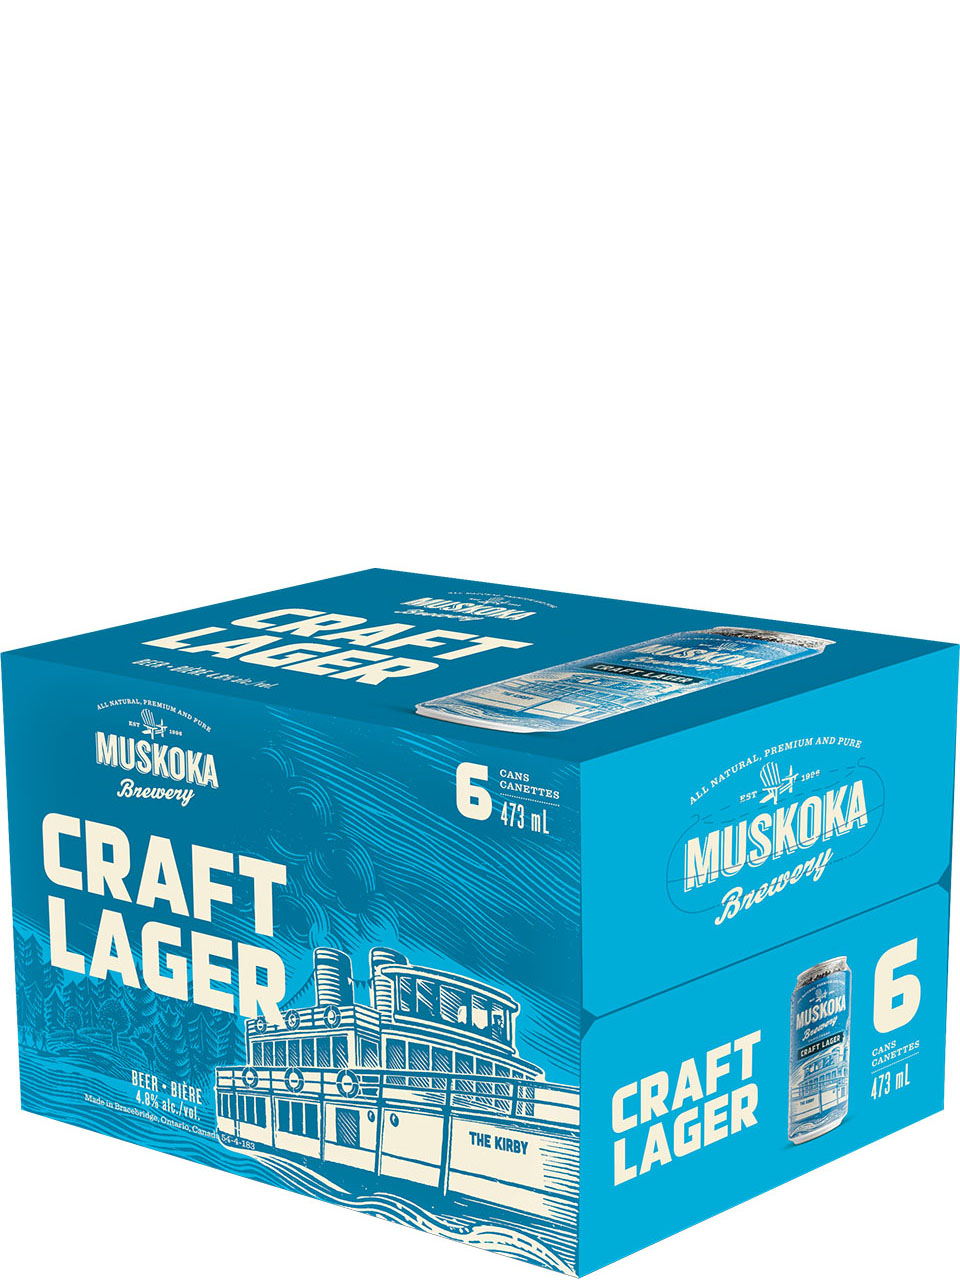 Muskoka Craft Lager 6 Pack Cans